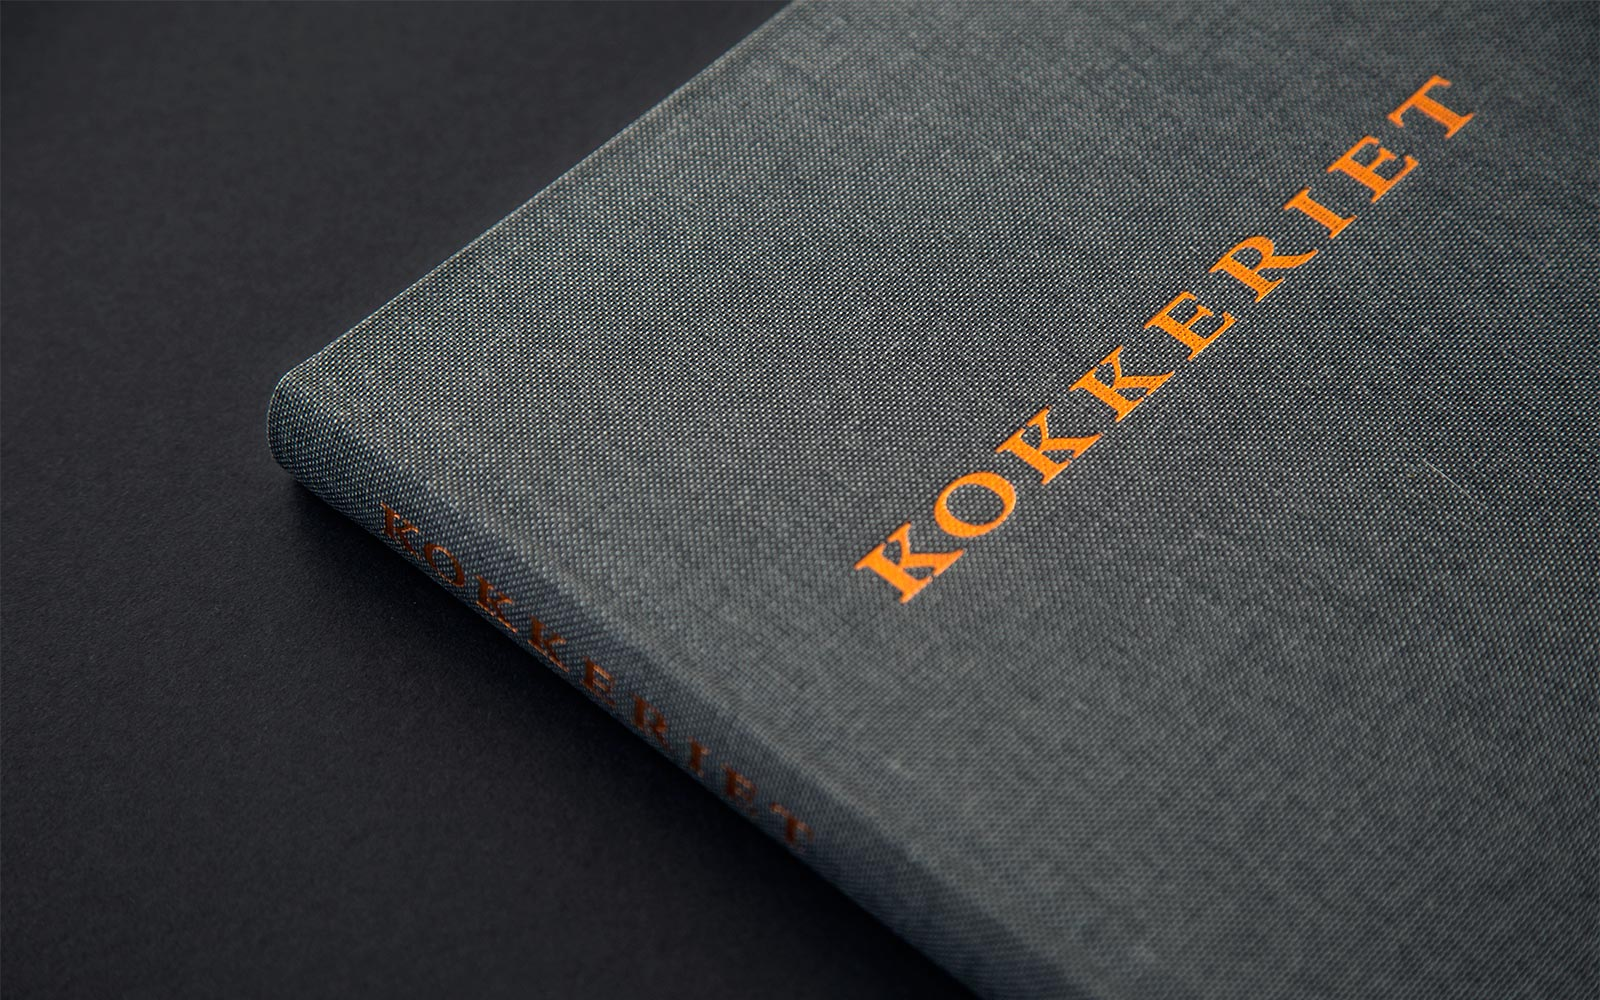 The cover of the cookbook Kokkeriet - The Danish Flavor in Our Kitchen